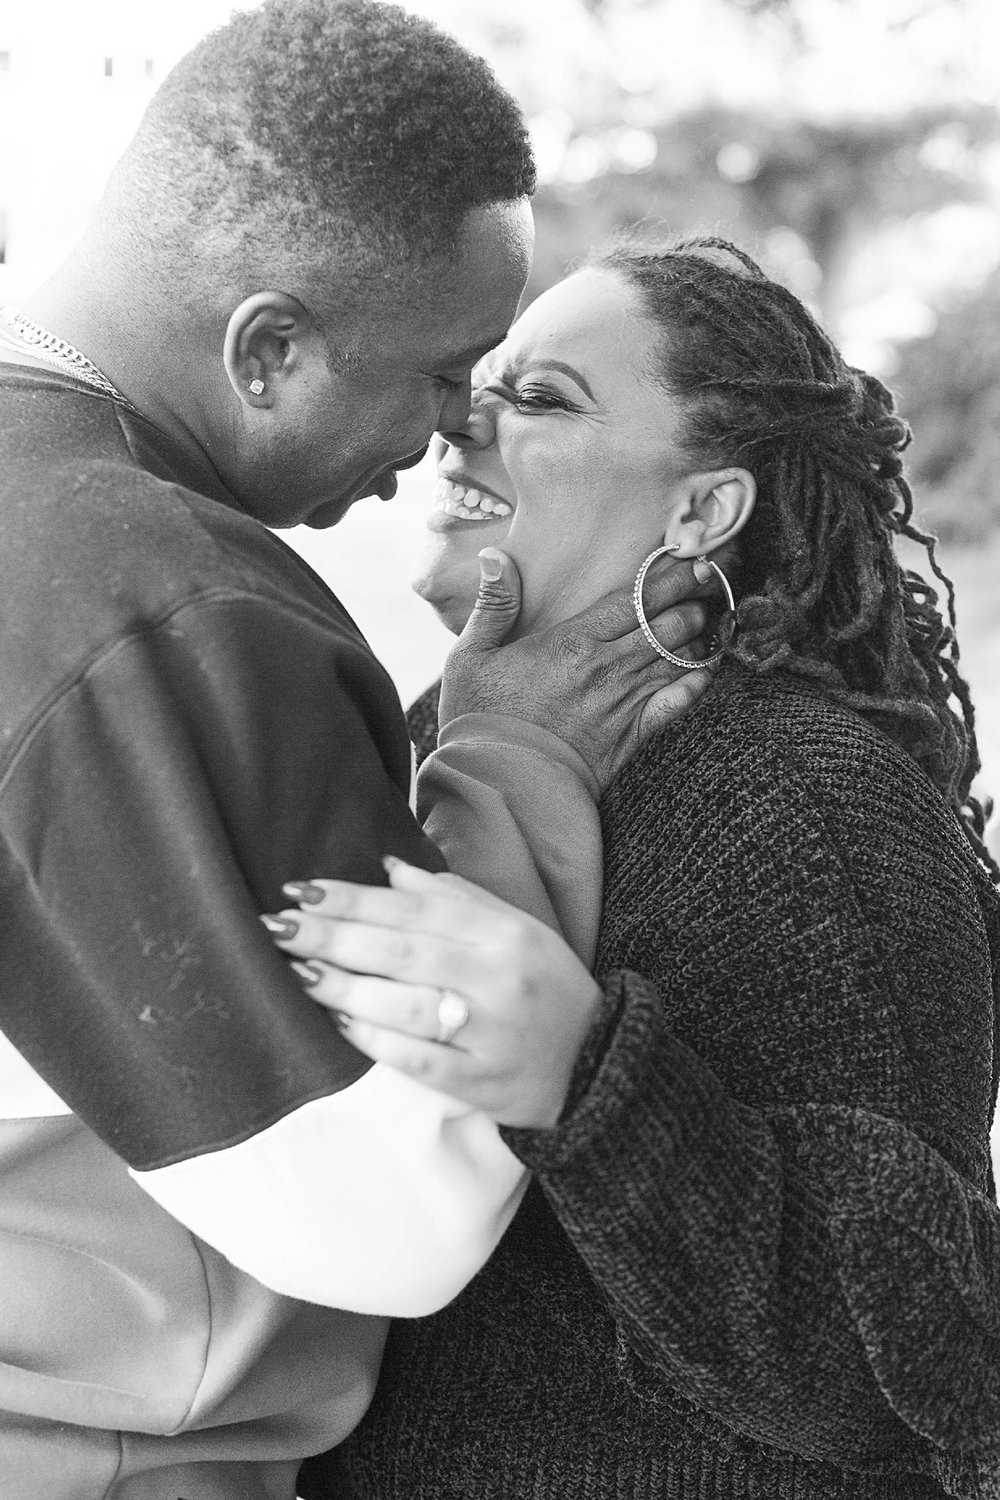 downtown_portsmouth_engagement_session_0466.jpg